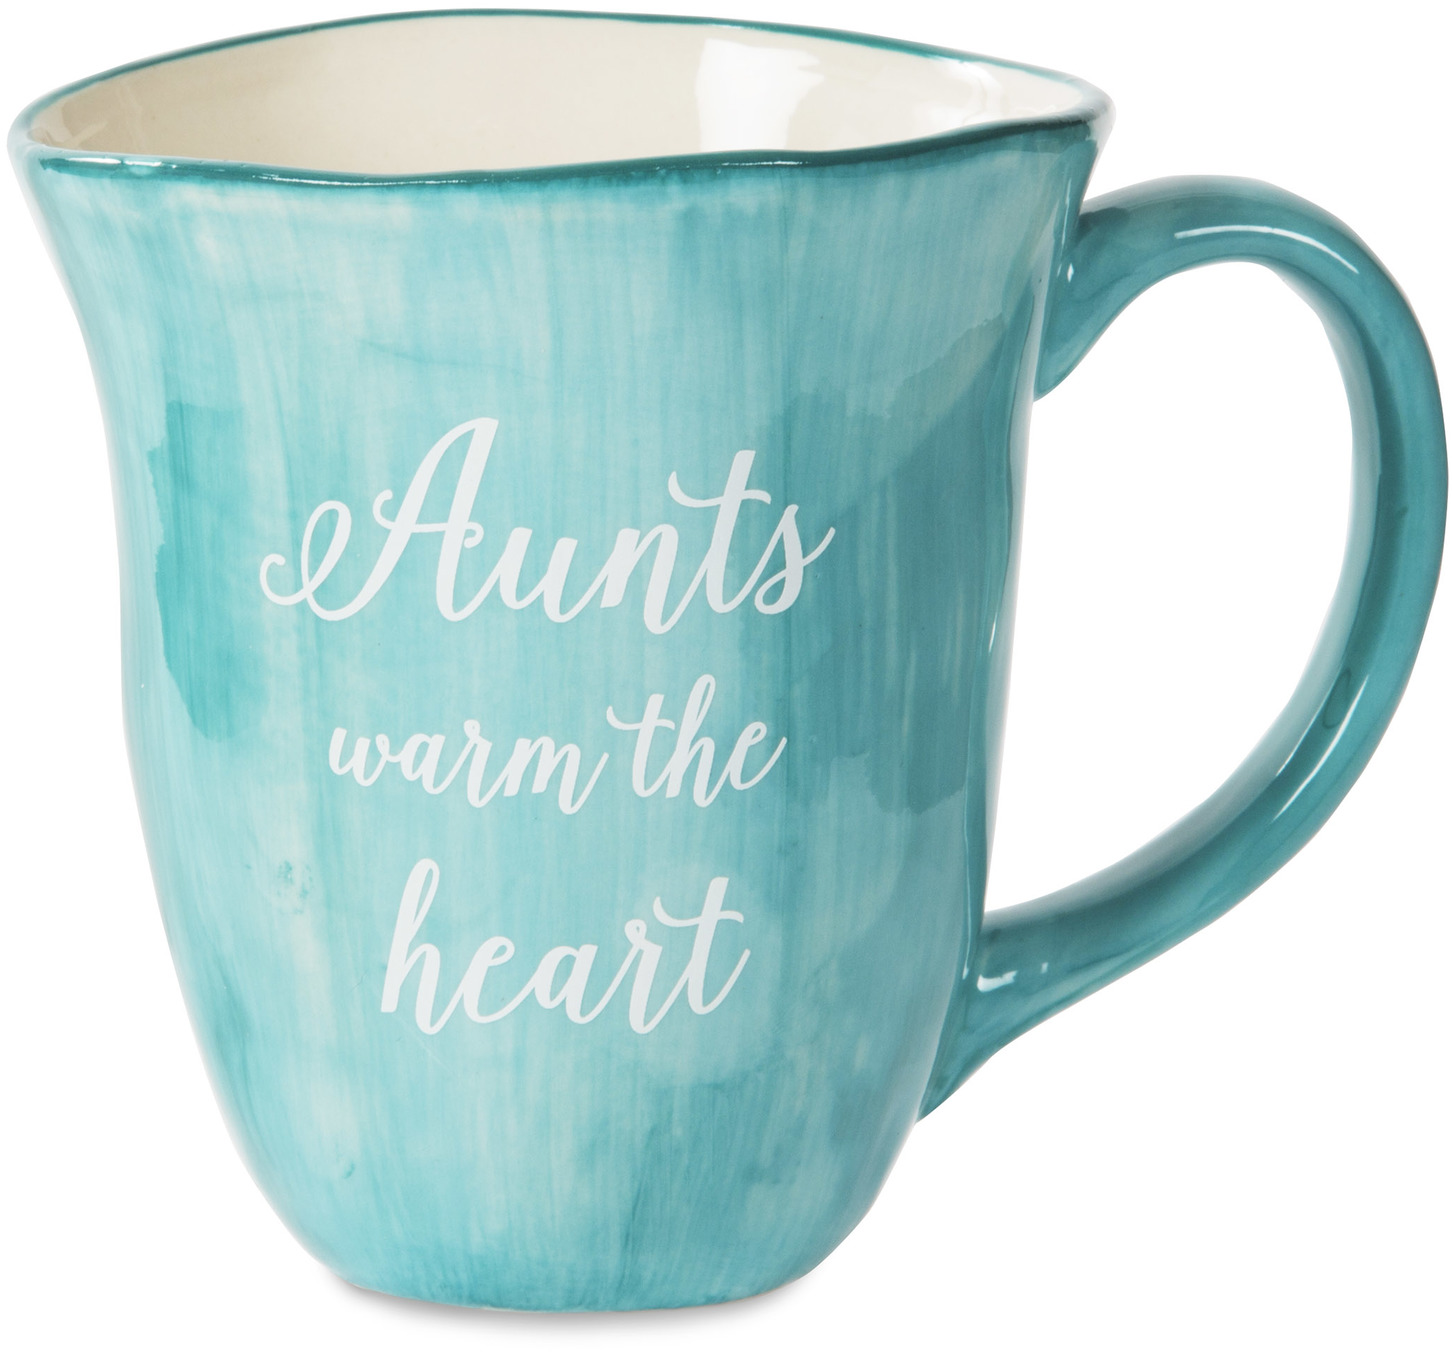 Aunt by Emmaline - Aunt - 16 oz Ceramic Mug